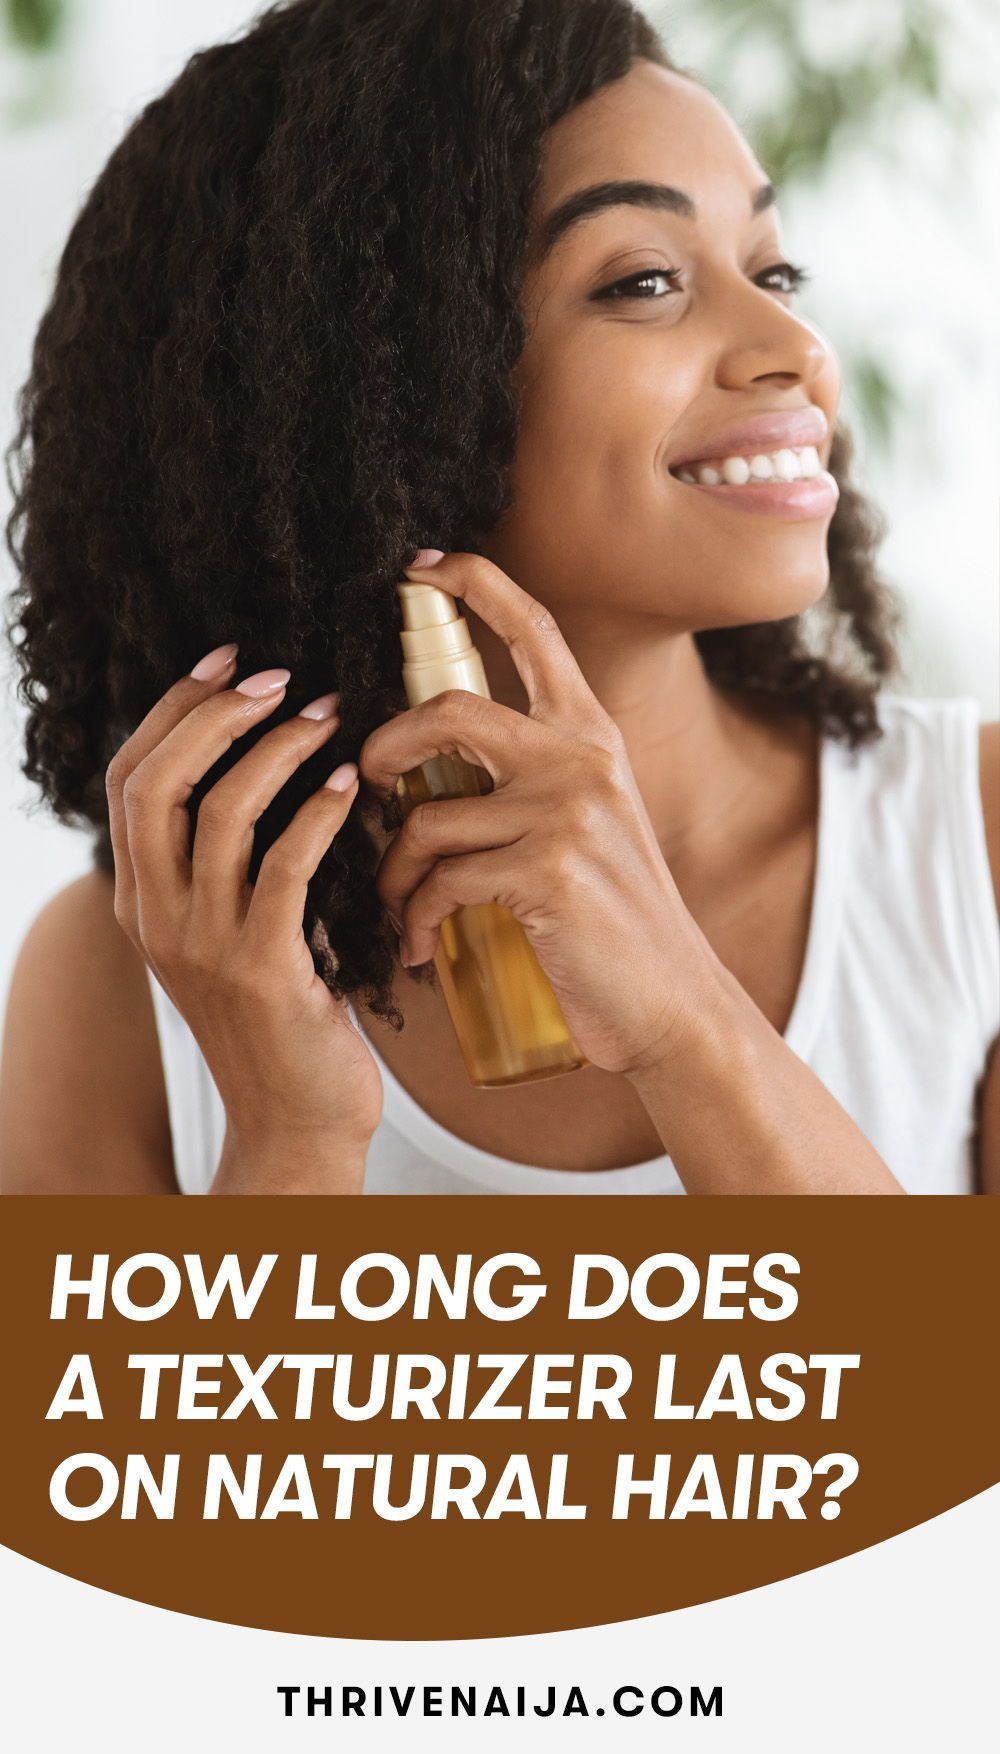 How Long Does A Texturizer Last On Natural Hair Thrivenaija In 2021 Natural Hair Styles Natural Hair Care Diy Hair Care